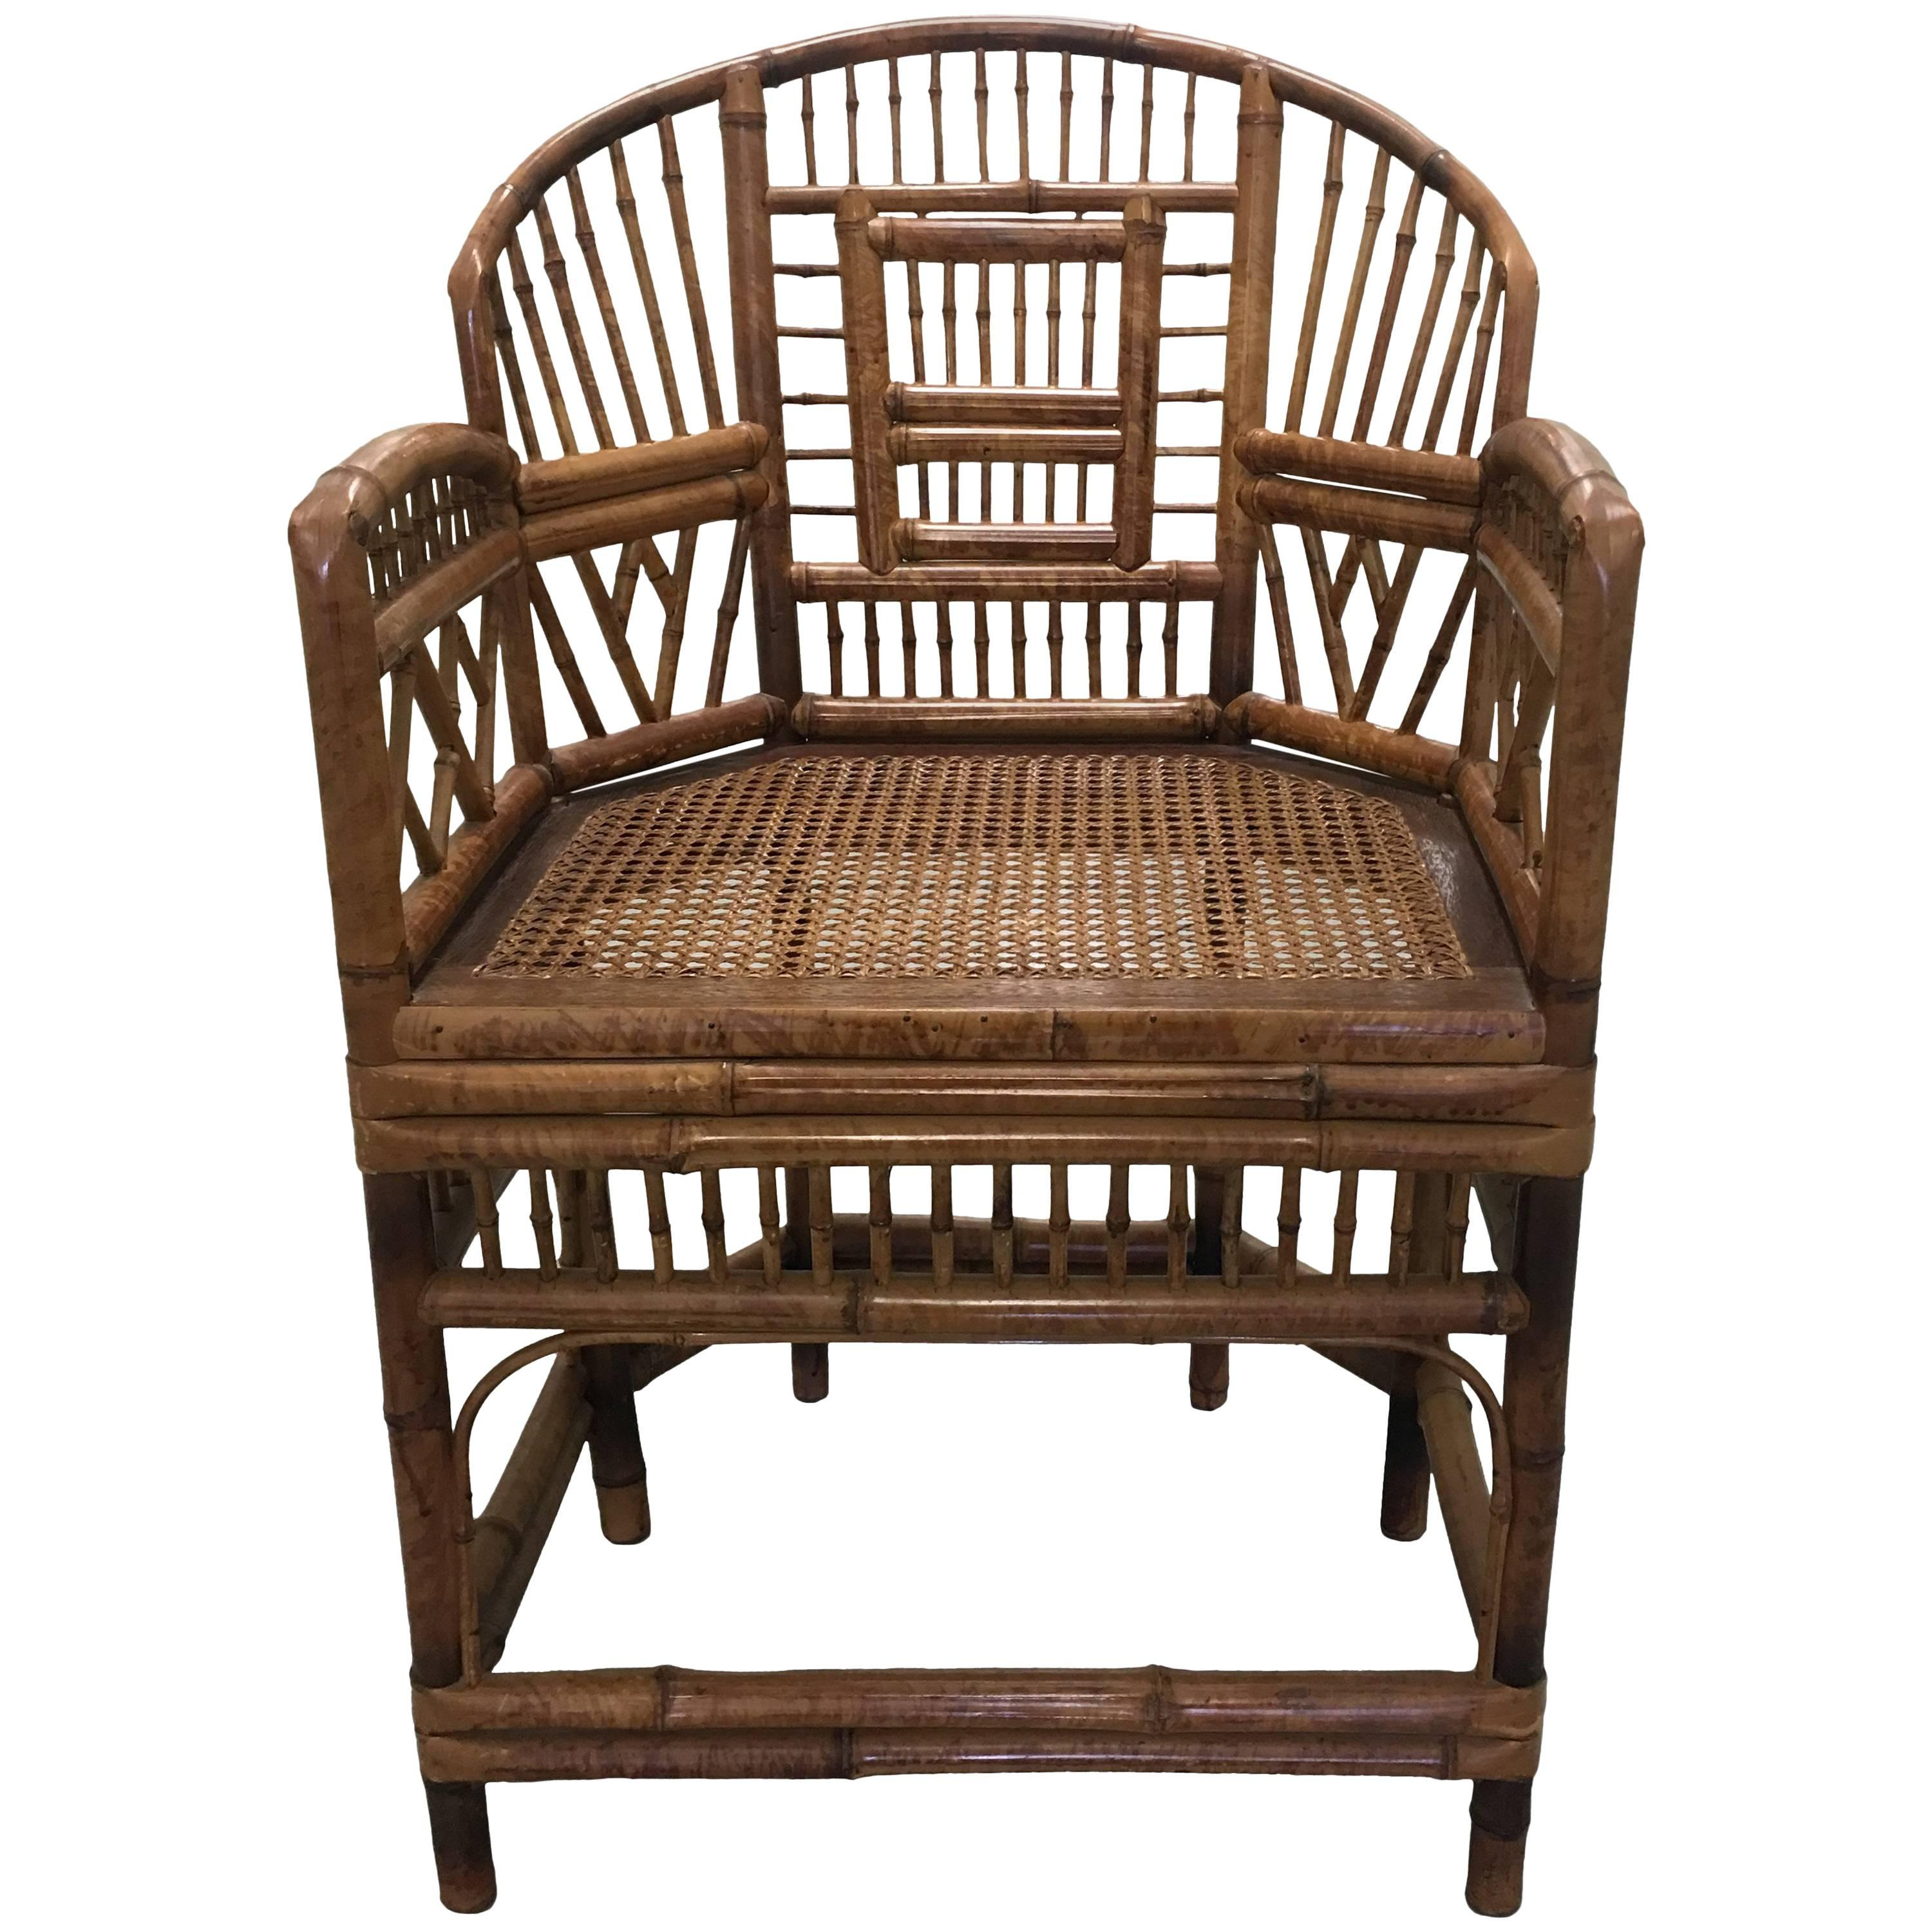 Chinese Chippendale Brighton Pavilion Bamboo Armchair For Sale